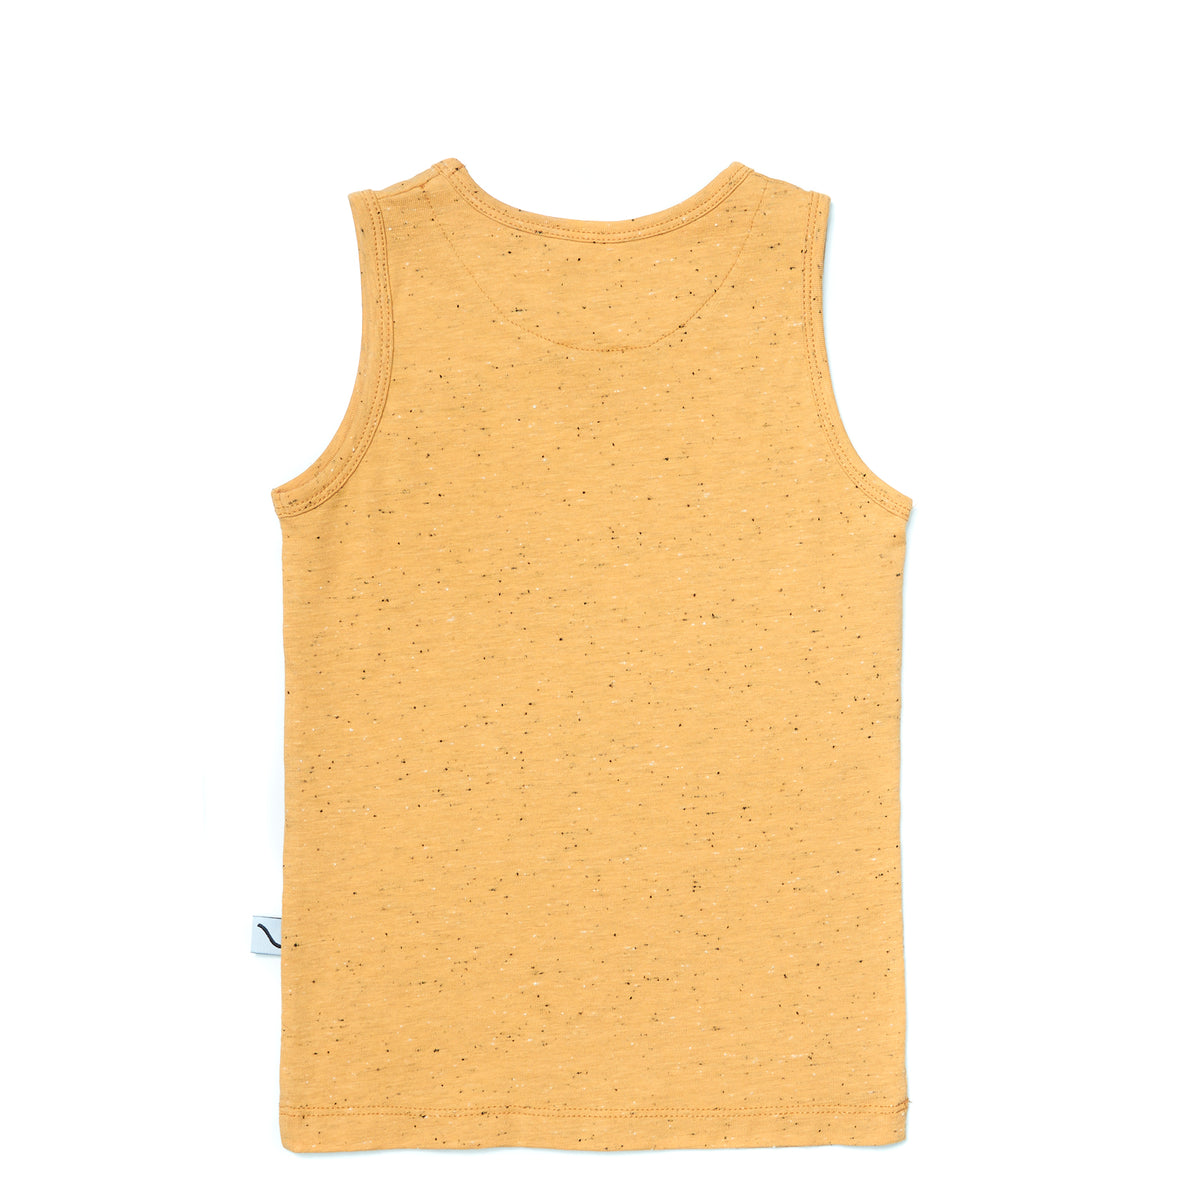 This sleeveless top in yellow, was made with organic cotton. Fabric has small dots in black and white.